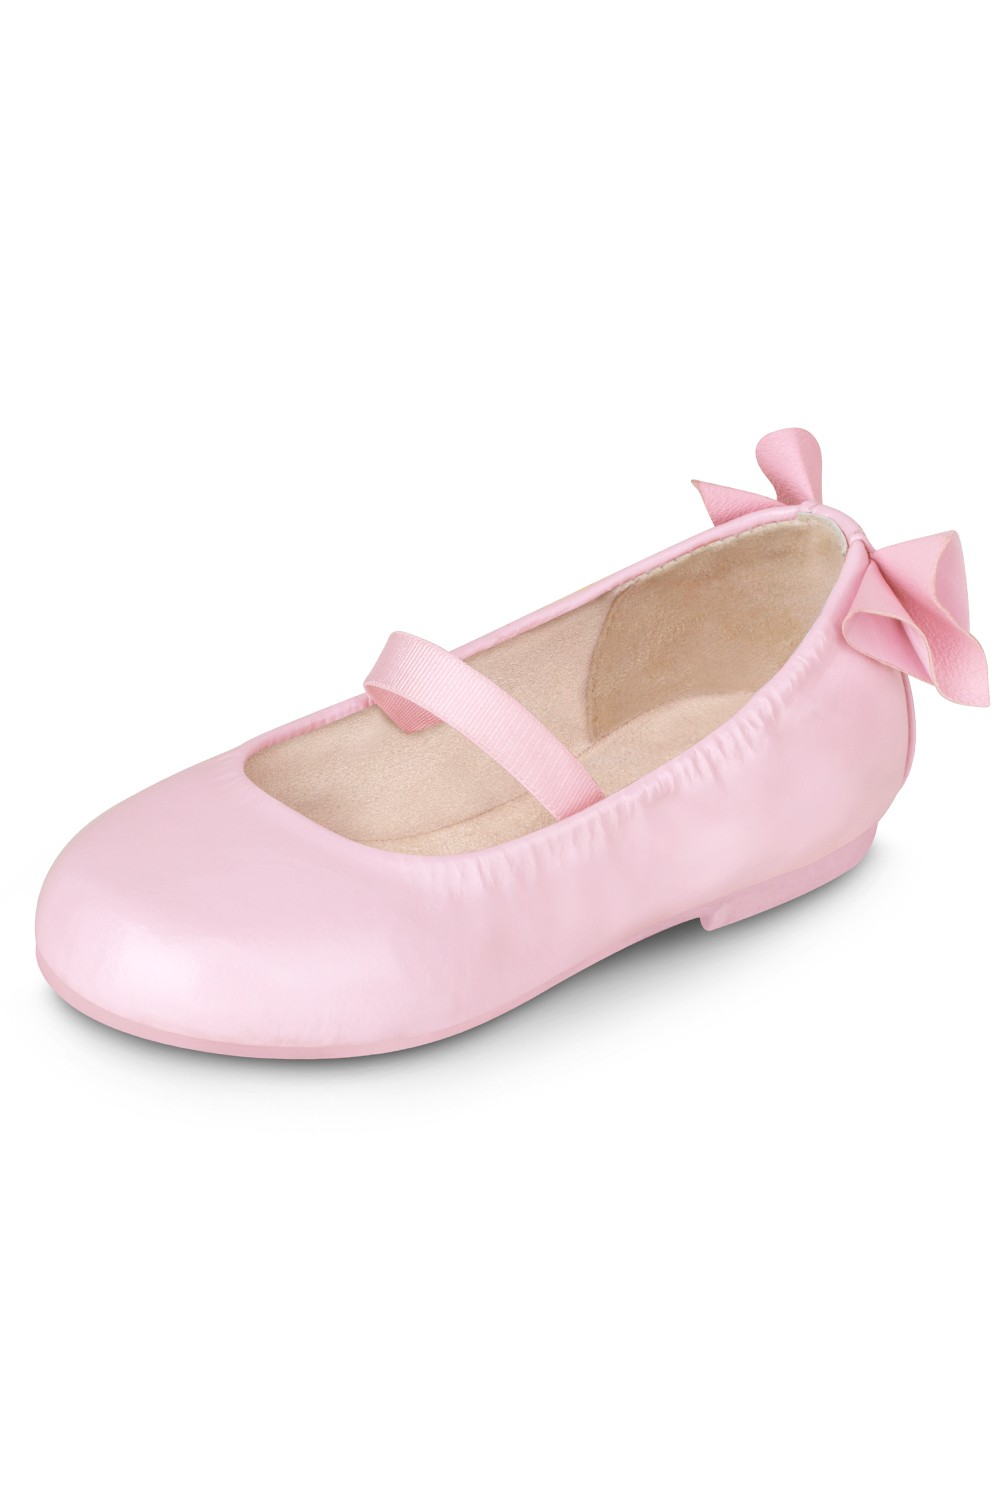 Sophie Toddlers Fashion Shoes